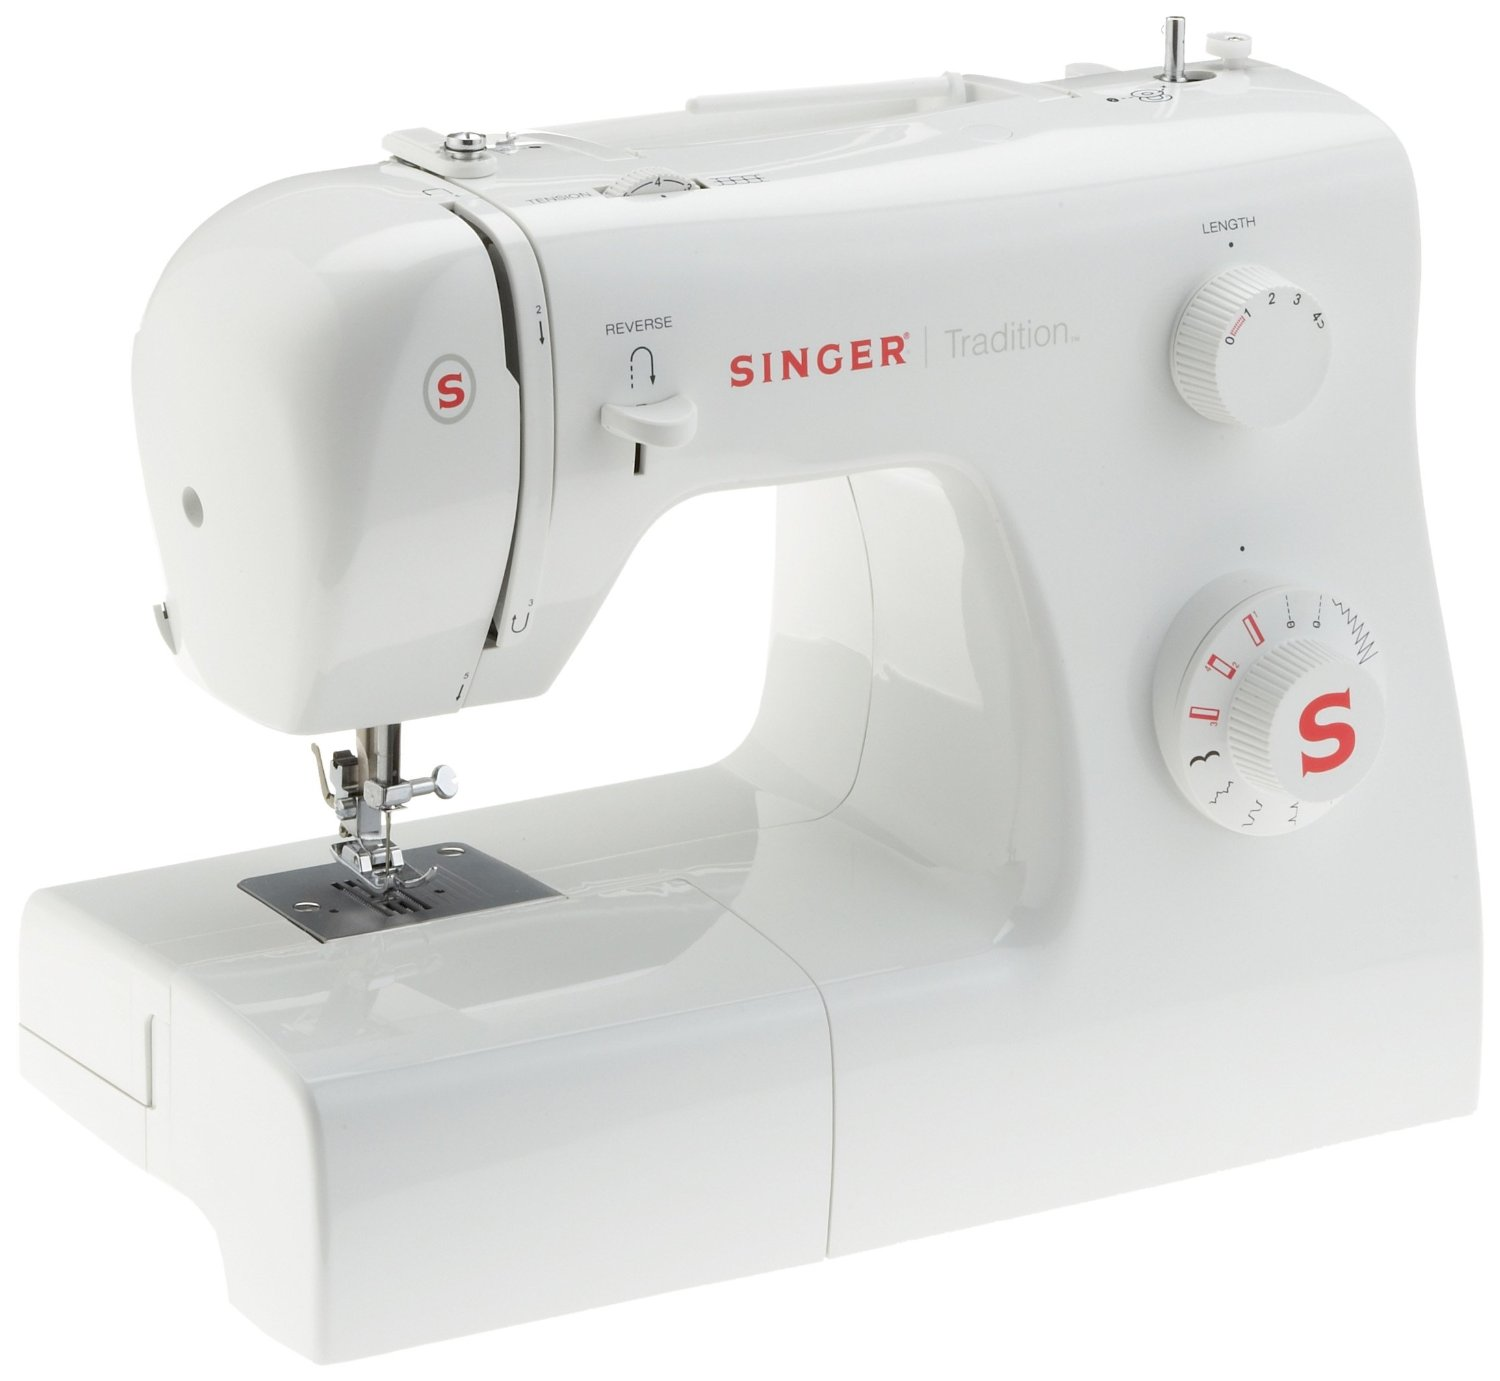 Coser En Casa - [Análisis] Singer 2250 Tradition Ideal